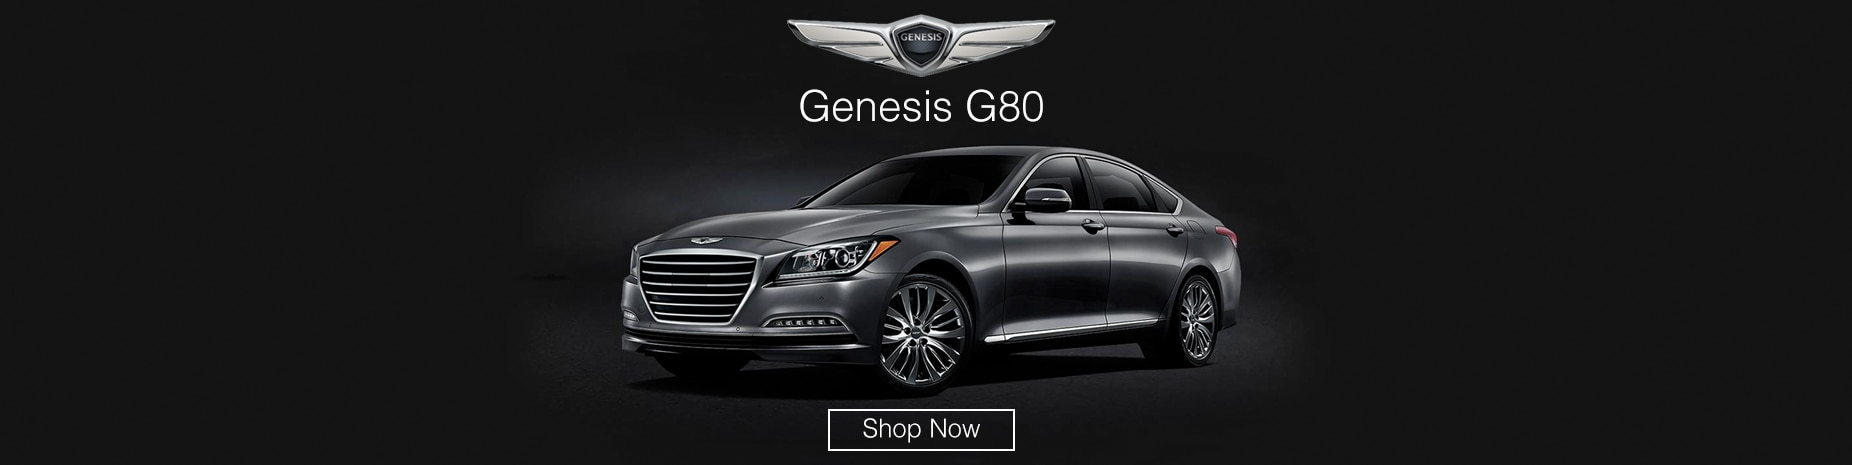 2017 Genesis G80 | New 2017 Genesis G80 For Sale